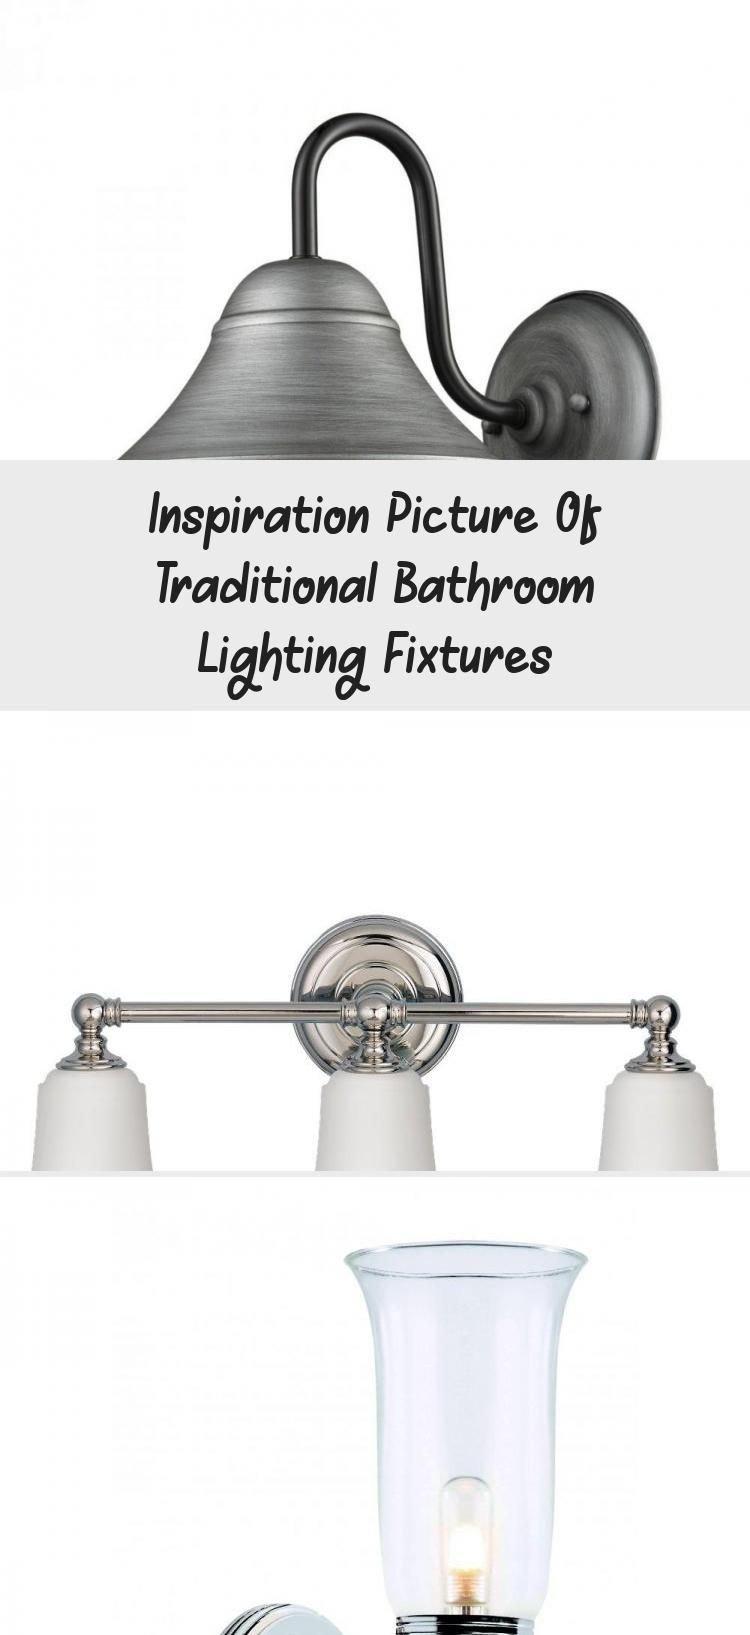 Inspiration Picture Of Traditional Bathroom Lighting Fixtures In 2020 Traditional Bathroom Lighting Bathroom Light Fixtures Bathroom Fixtures